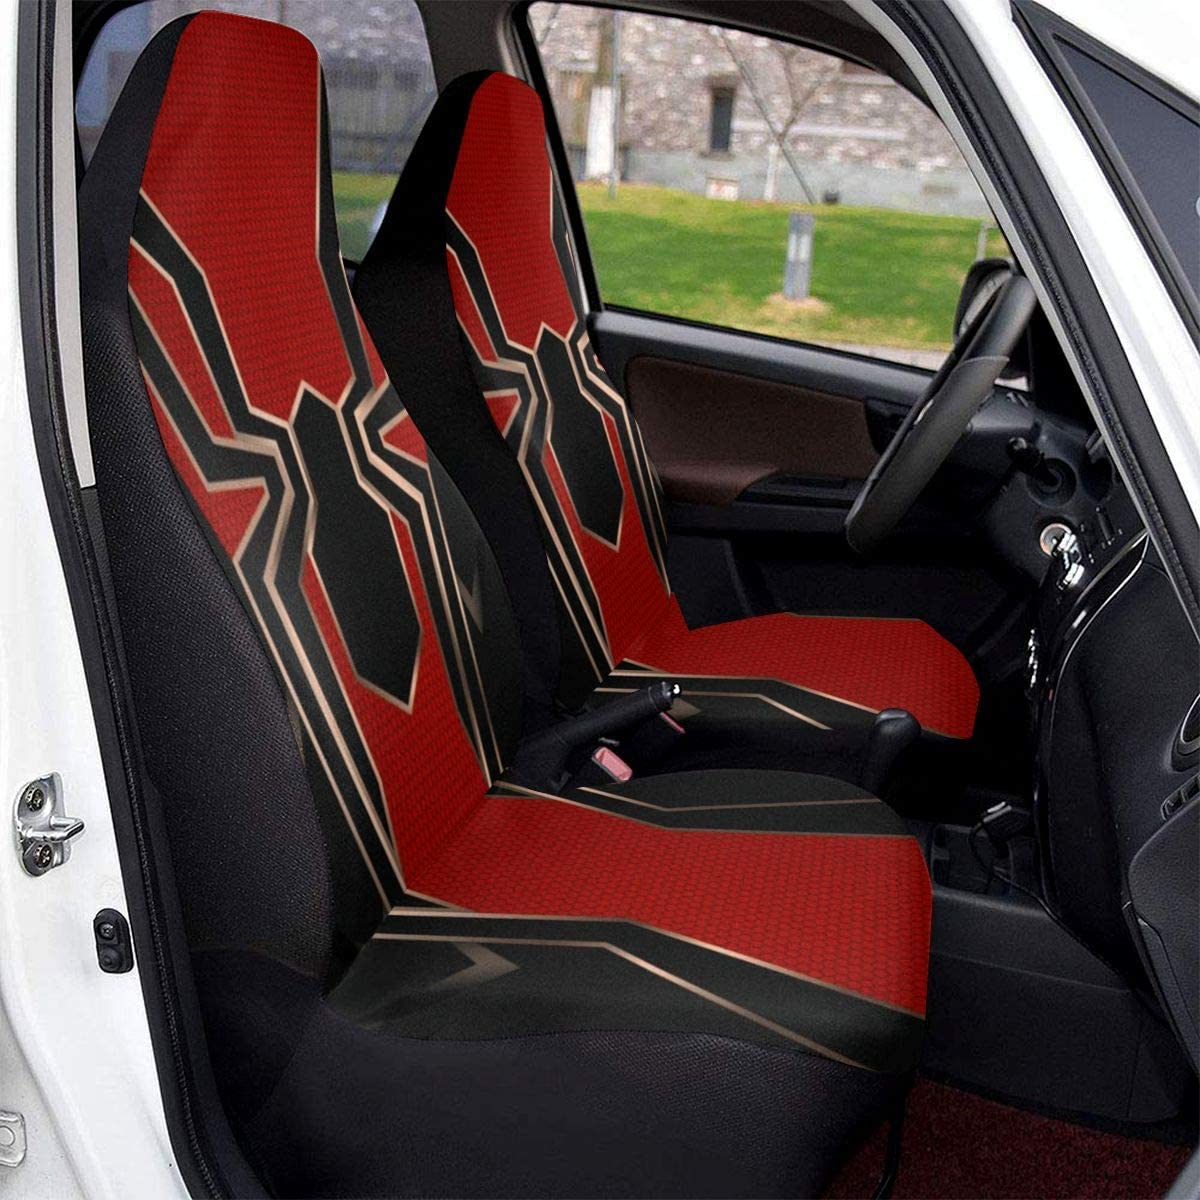 PFENK Car Seat Covers Dallas Cowboys Protector Cushion Premium Cover for Women Men Girls Boys Fits Most Cars Truck SUV Van